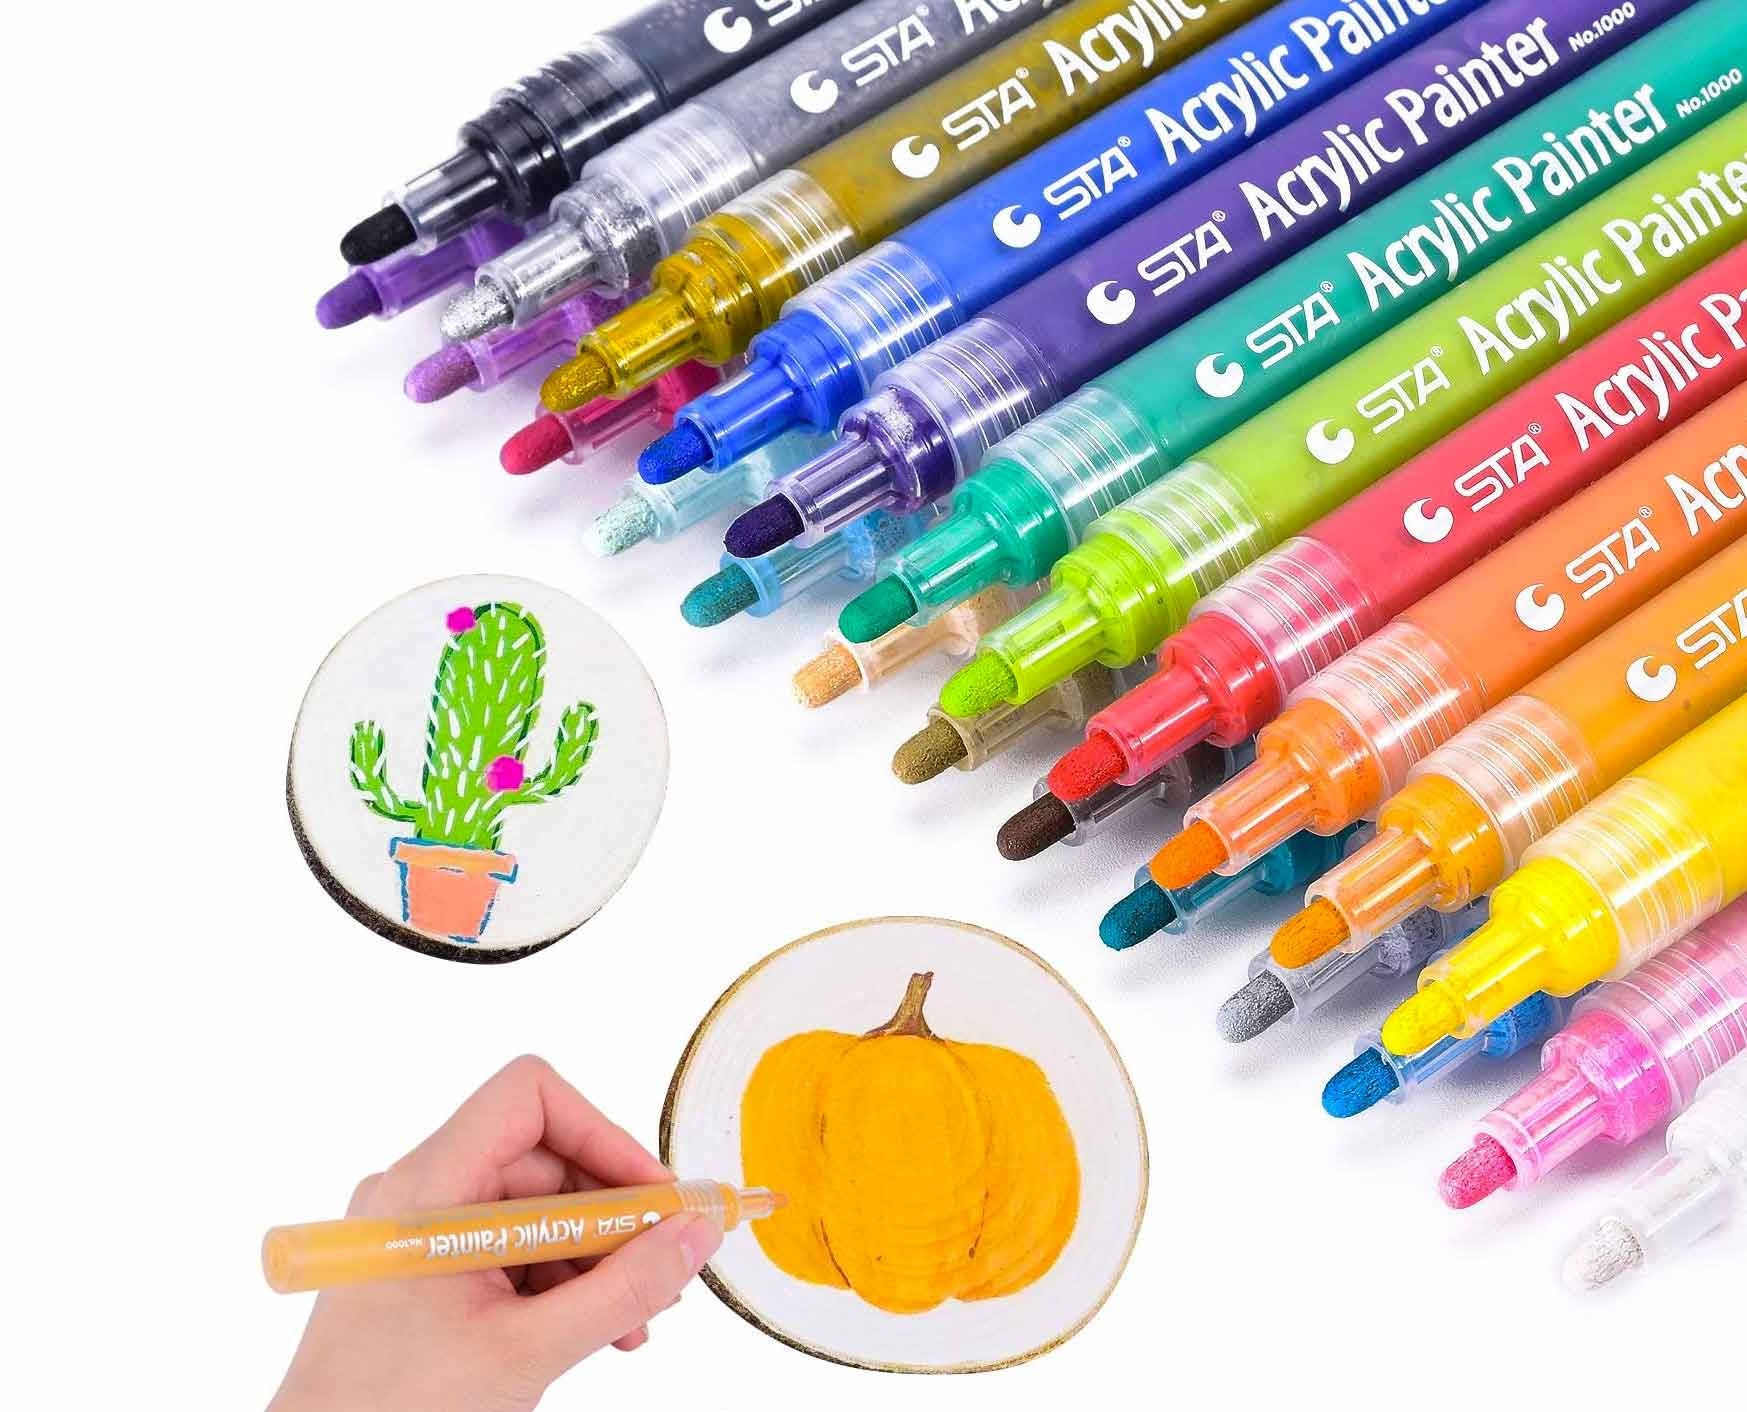 Acrylic Paint Pens, Morfone Markers 24 Colors Water Based Pen for Rock Painting